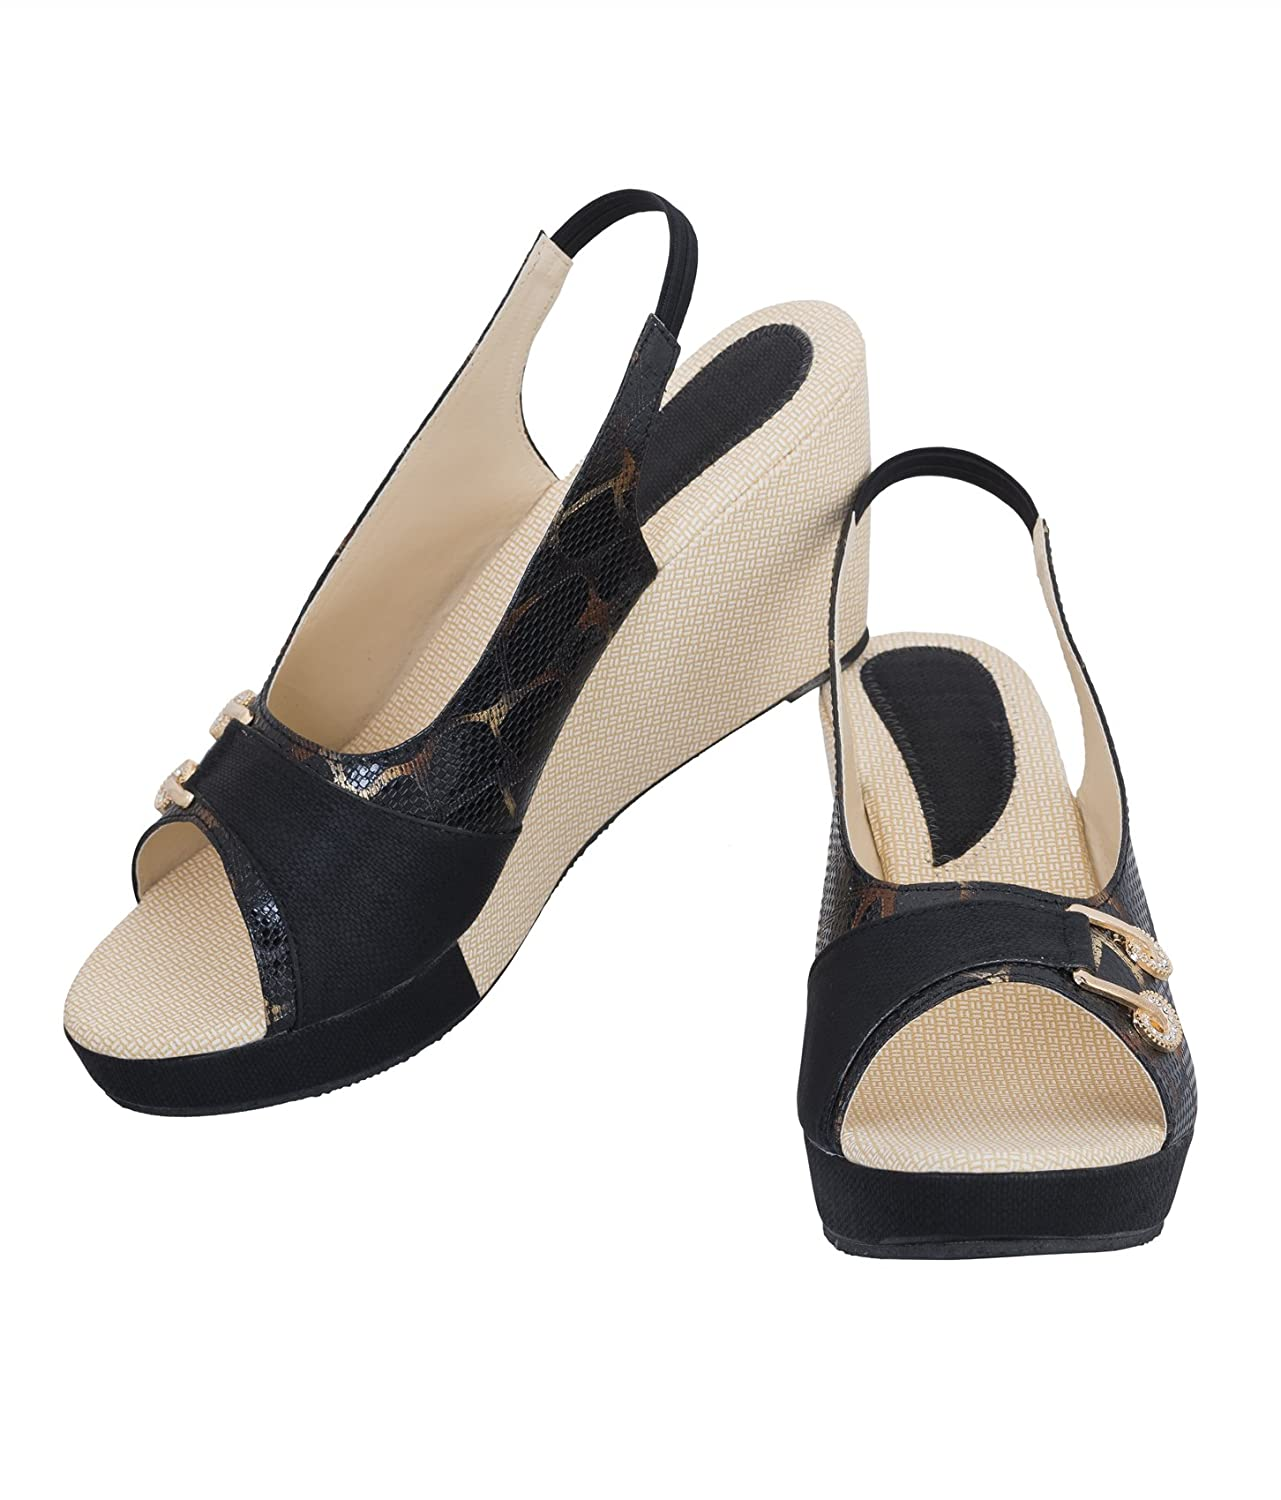 f07a151e1af Juti Kasoori Sandal for Women Casual Stylish Heel Sandals New Collection  Party Wear Casual Wear Sandals for Women   Girls by  Buy Online at Low  Prices in ...